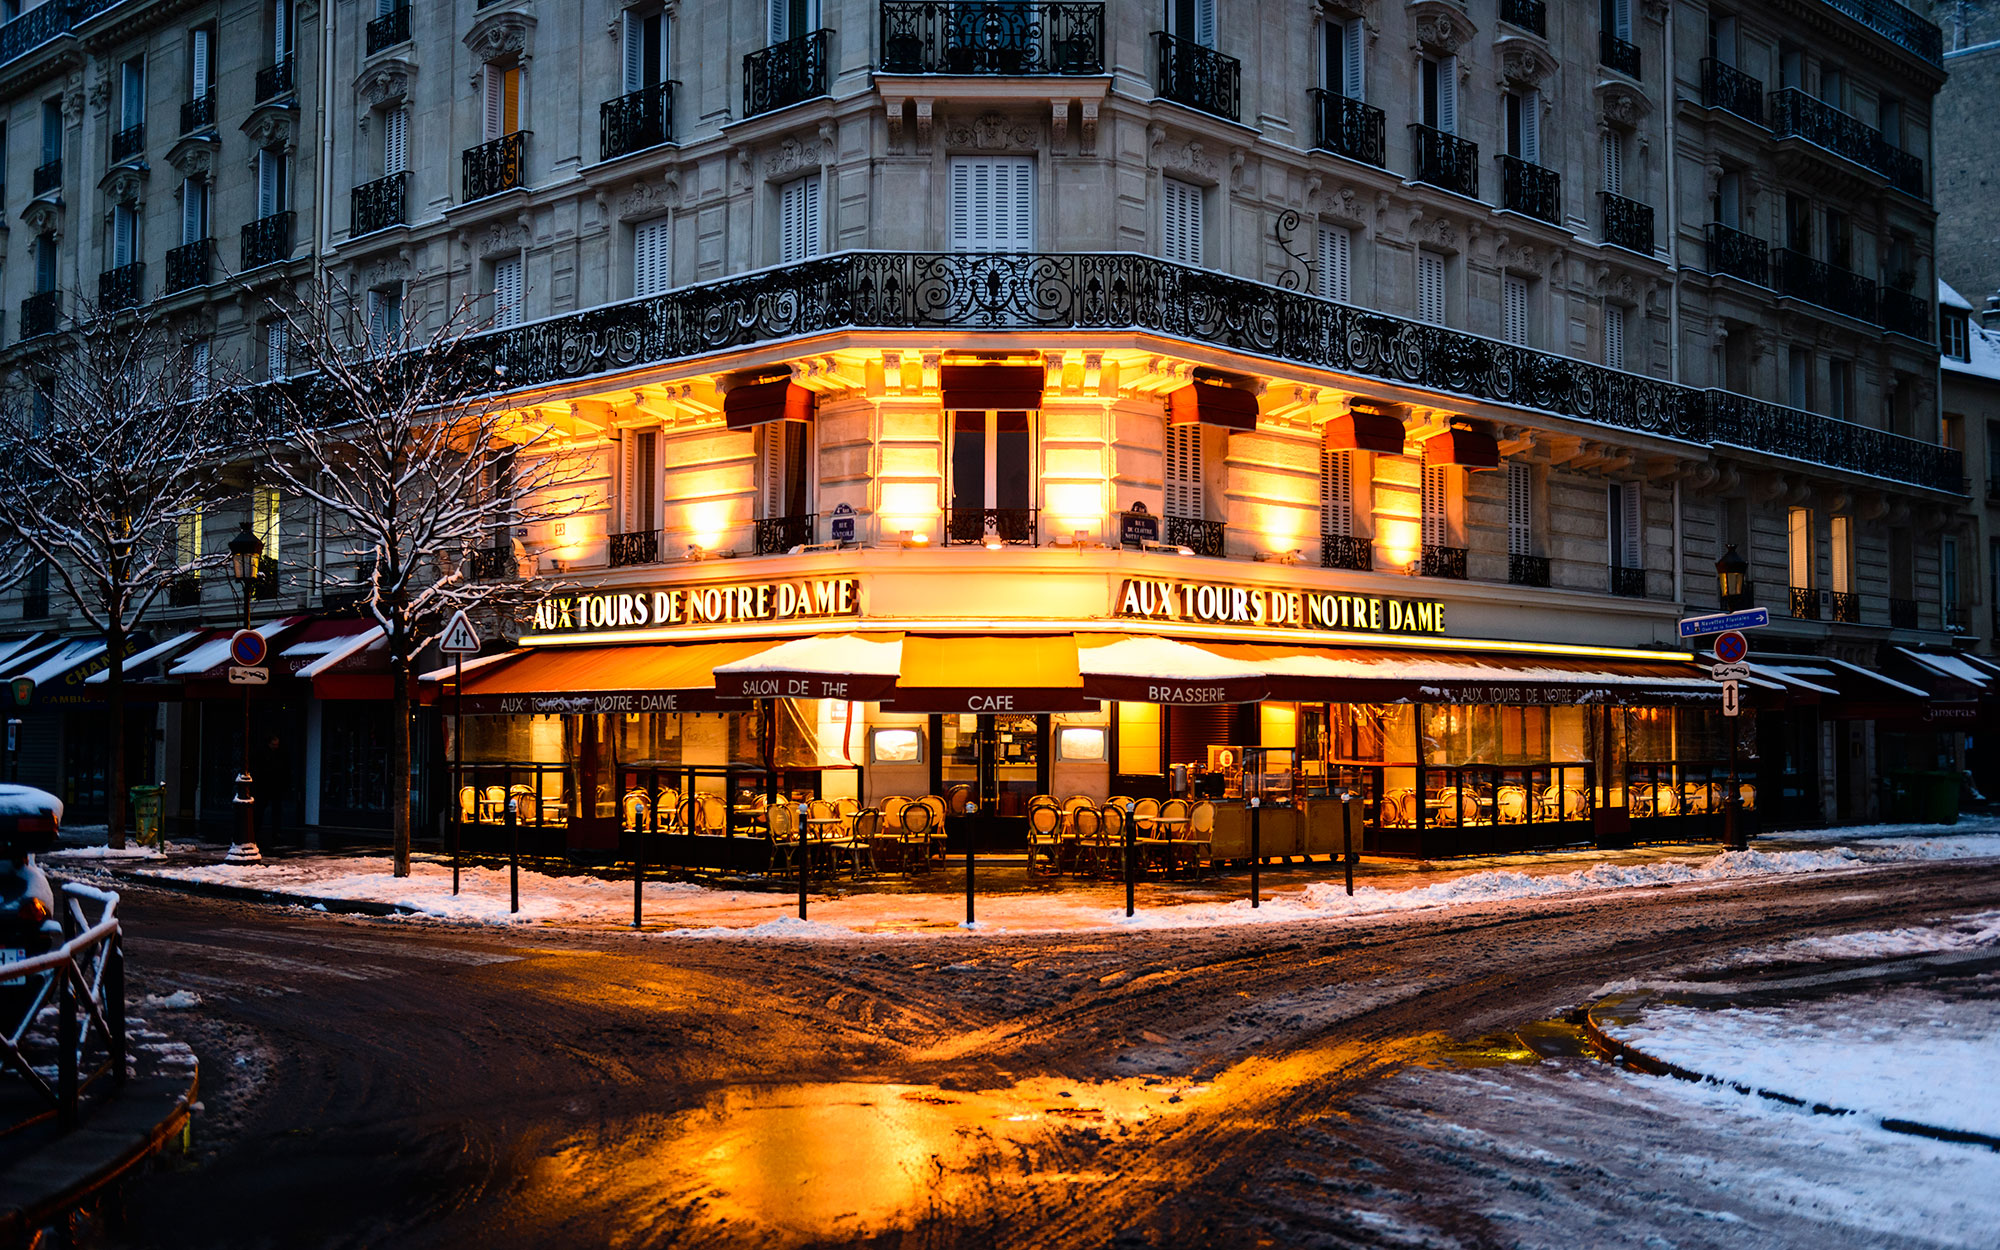 Parisian Cafe in the Morning